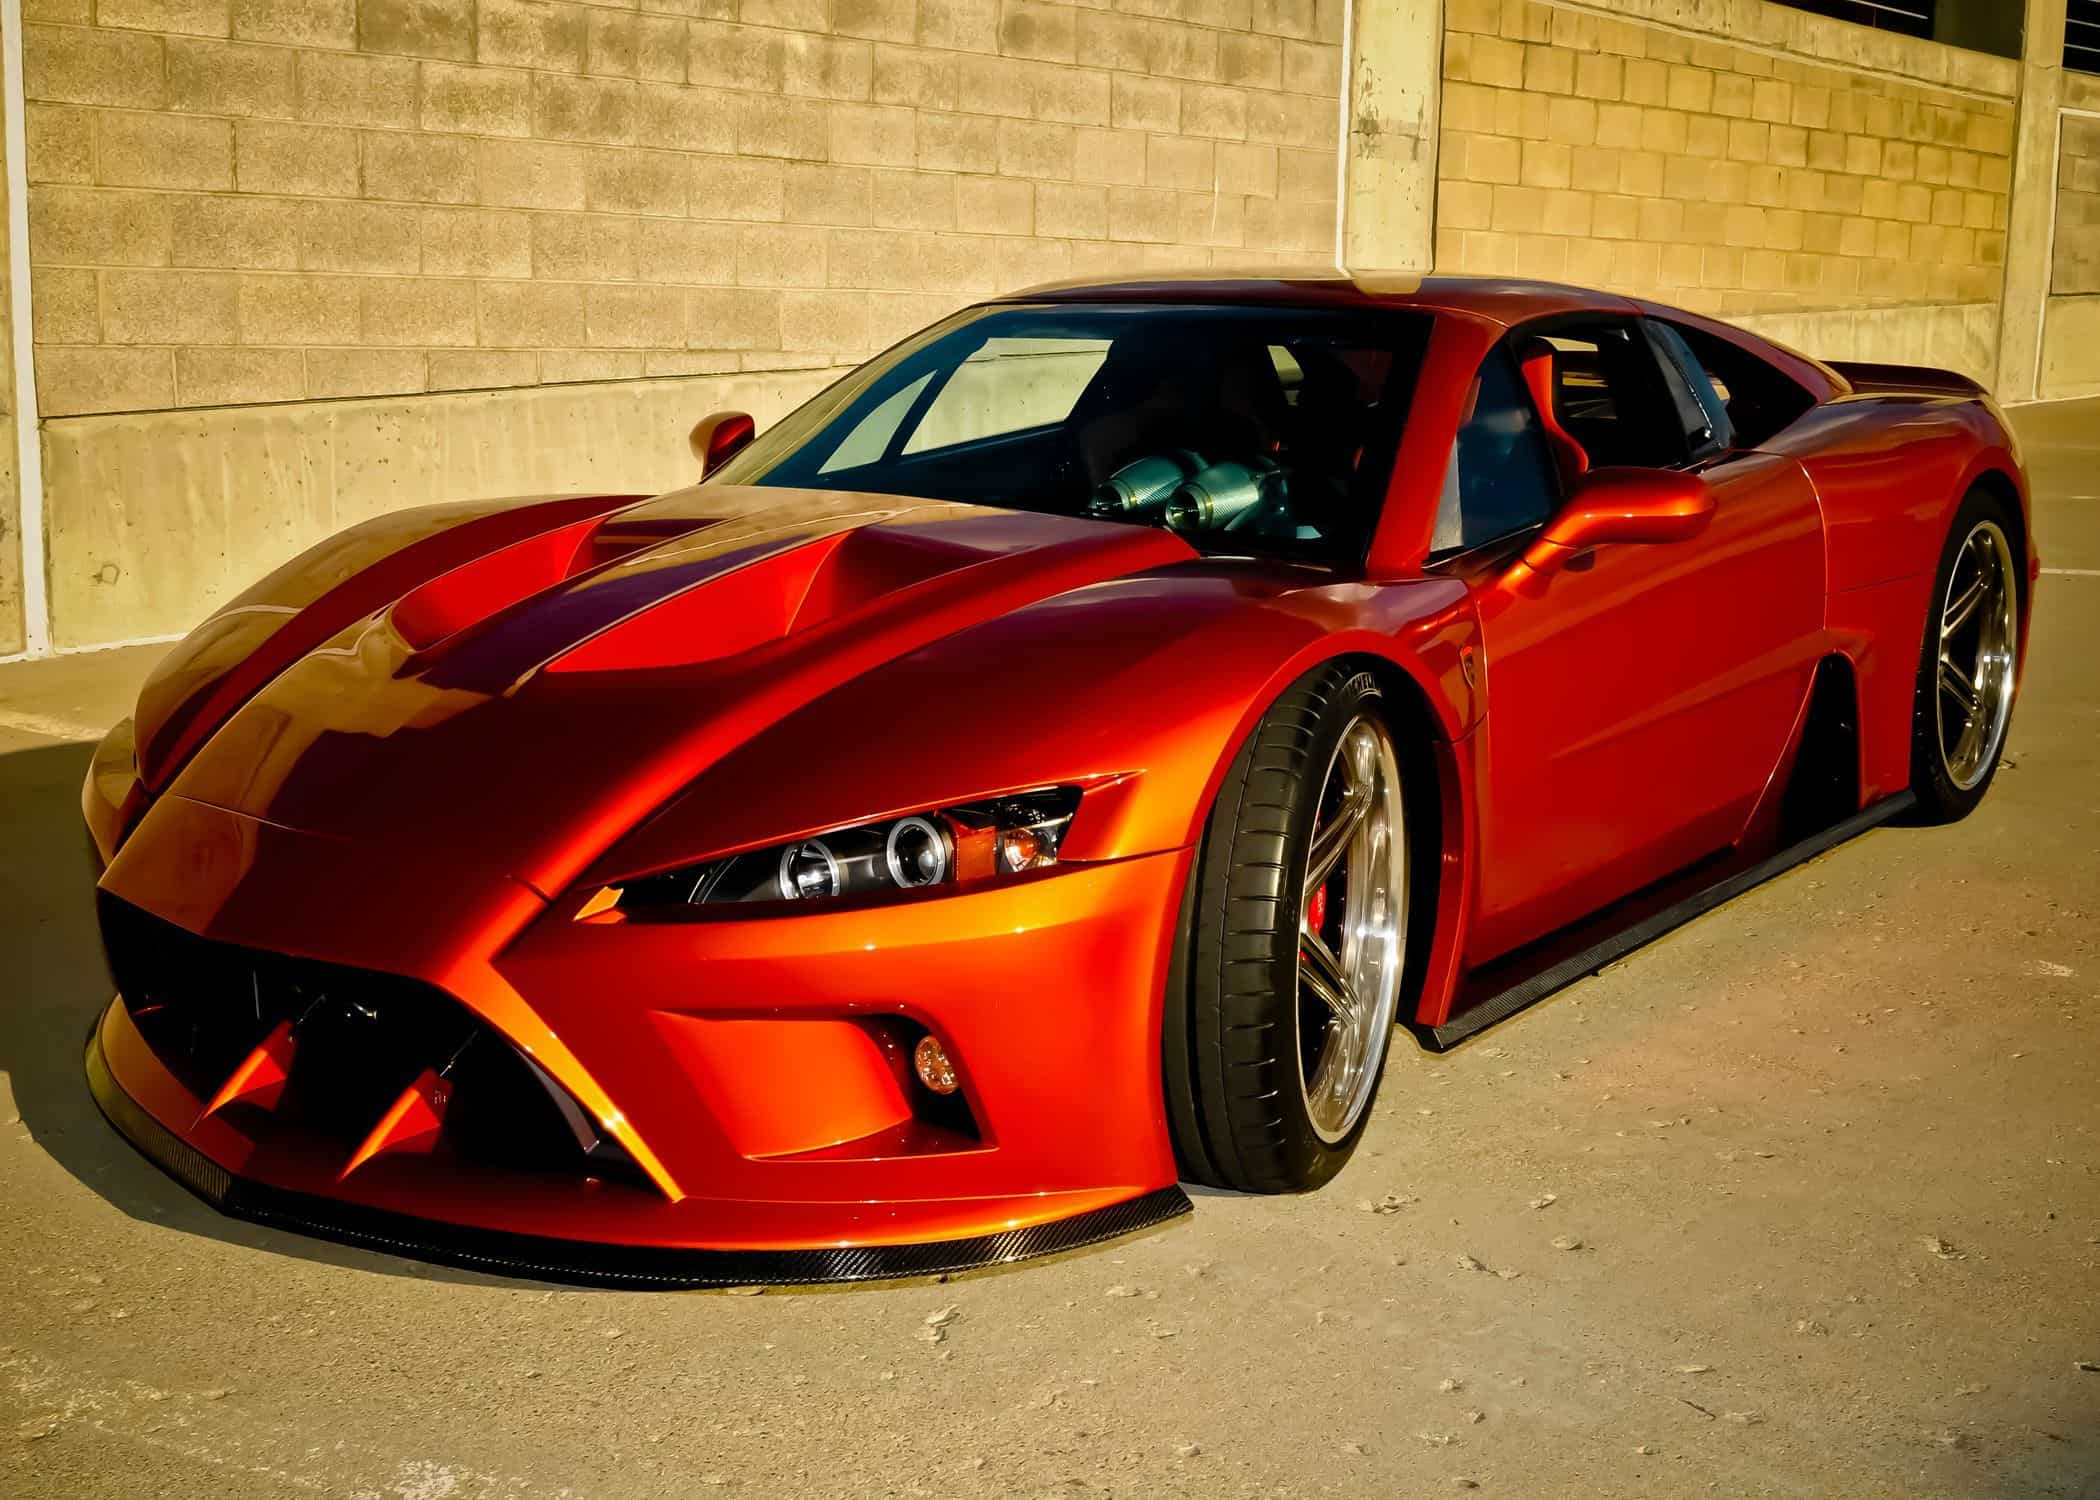 Dream-cars--dream-car-most-expensive-cars-falcon-f7-sports-car-sports-cars-beverly-hills-magazine-car-magazine-VIP-style-cars-1